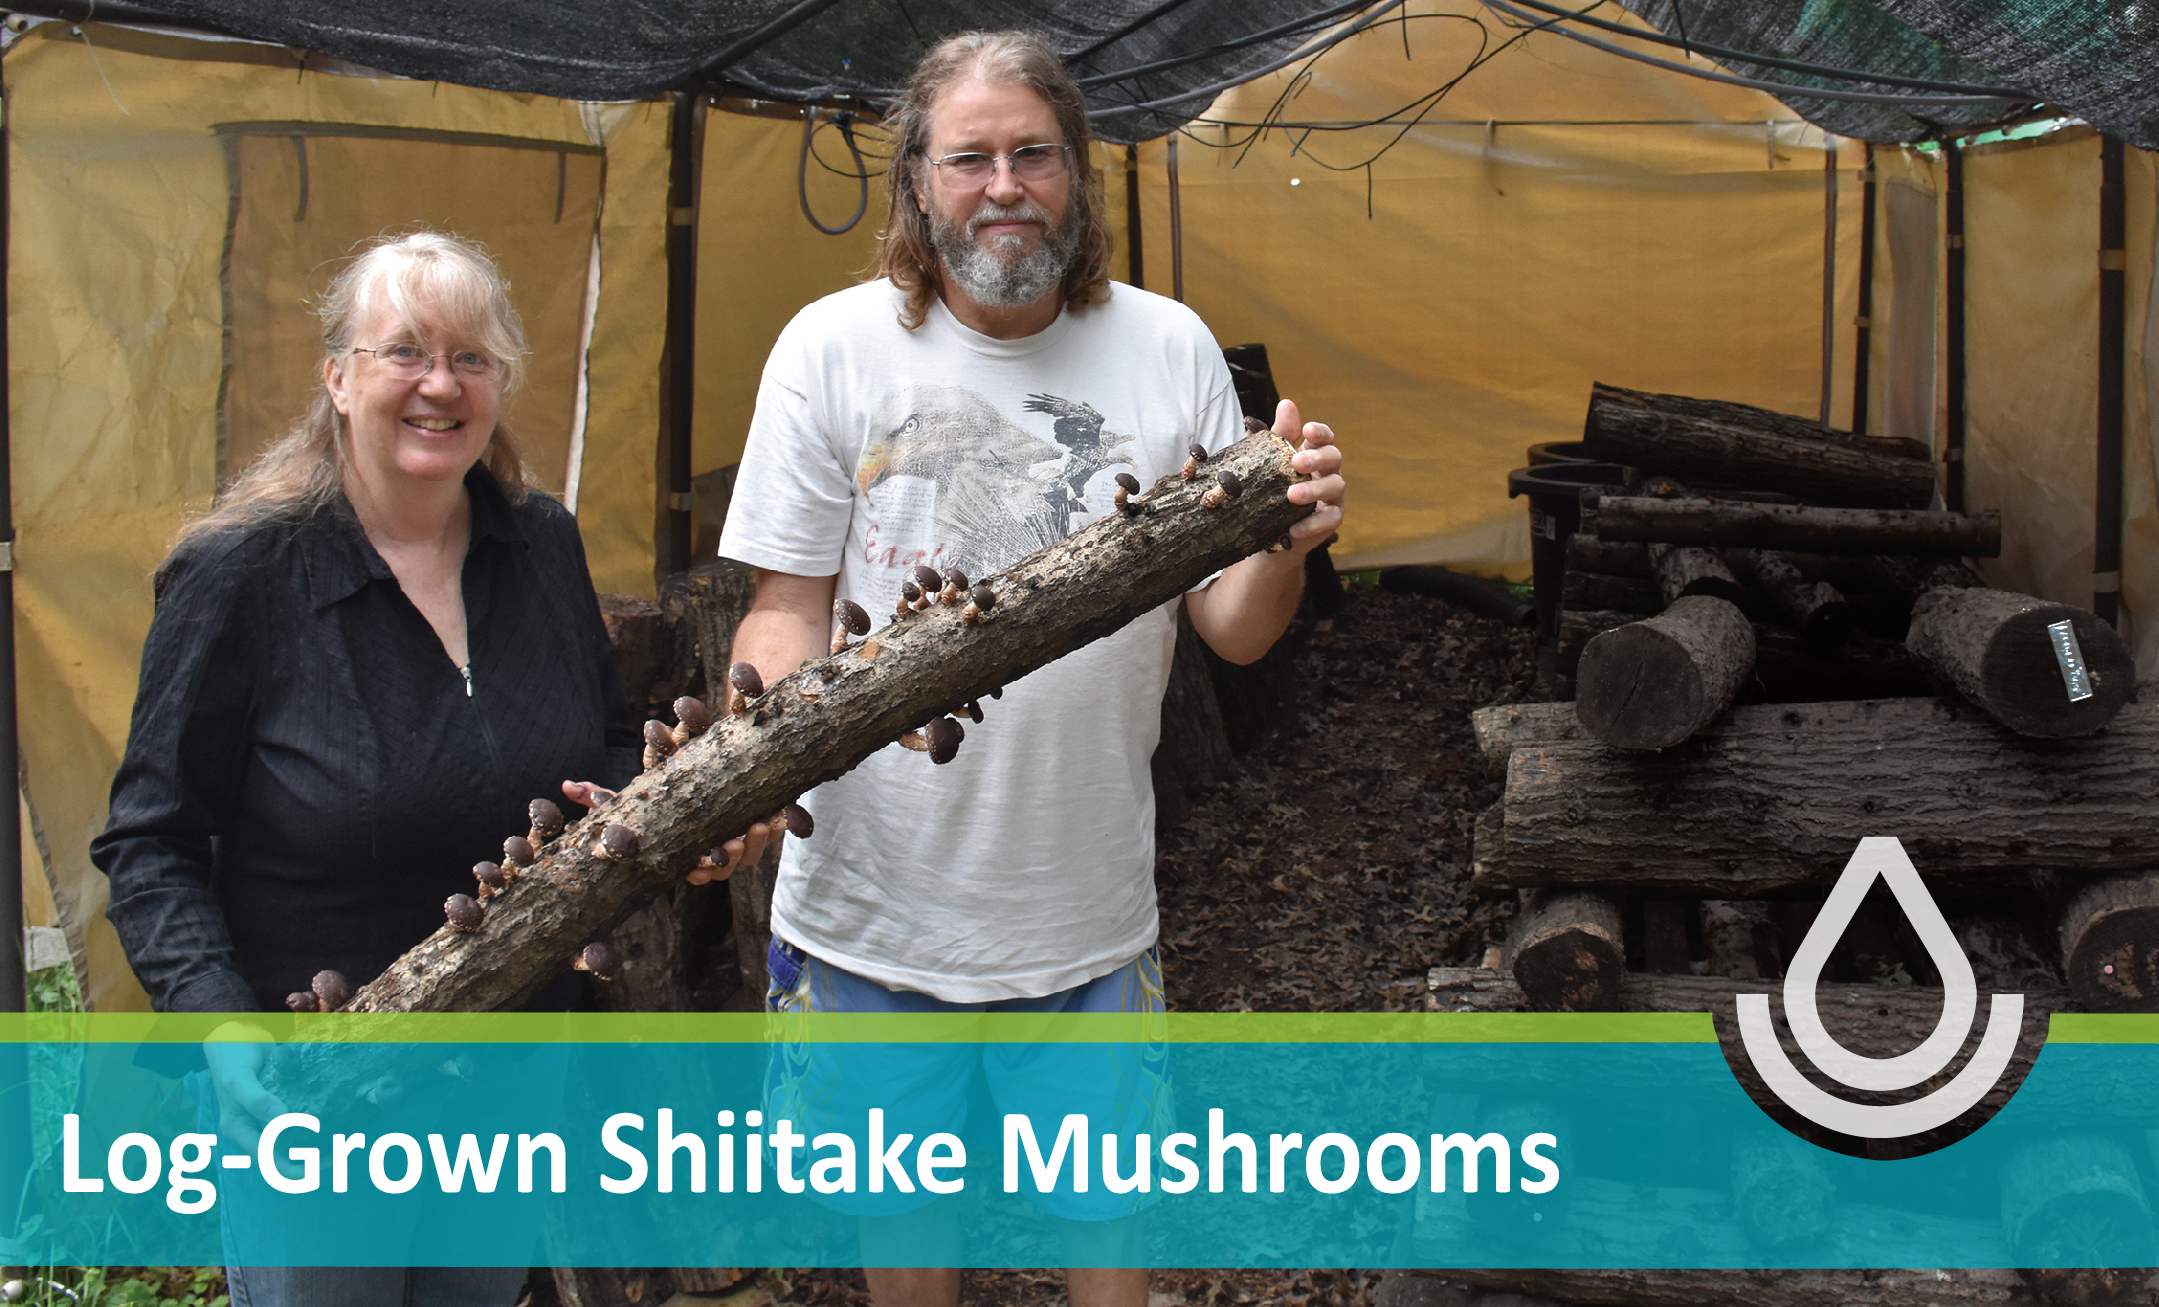 FY19 Ingrid and Paul West - Shiitakes